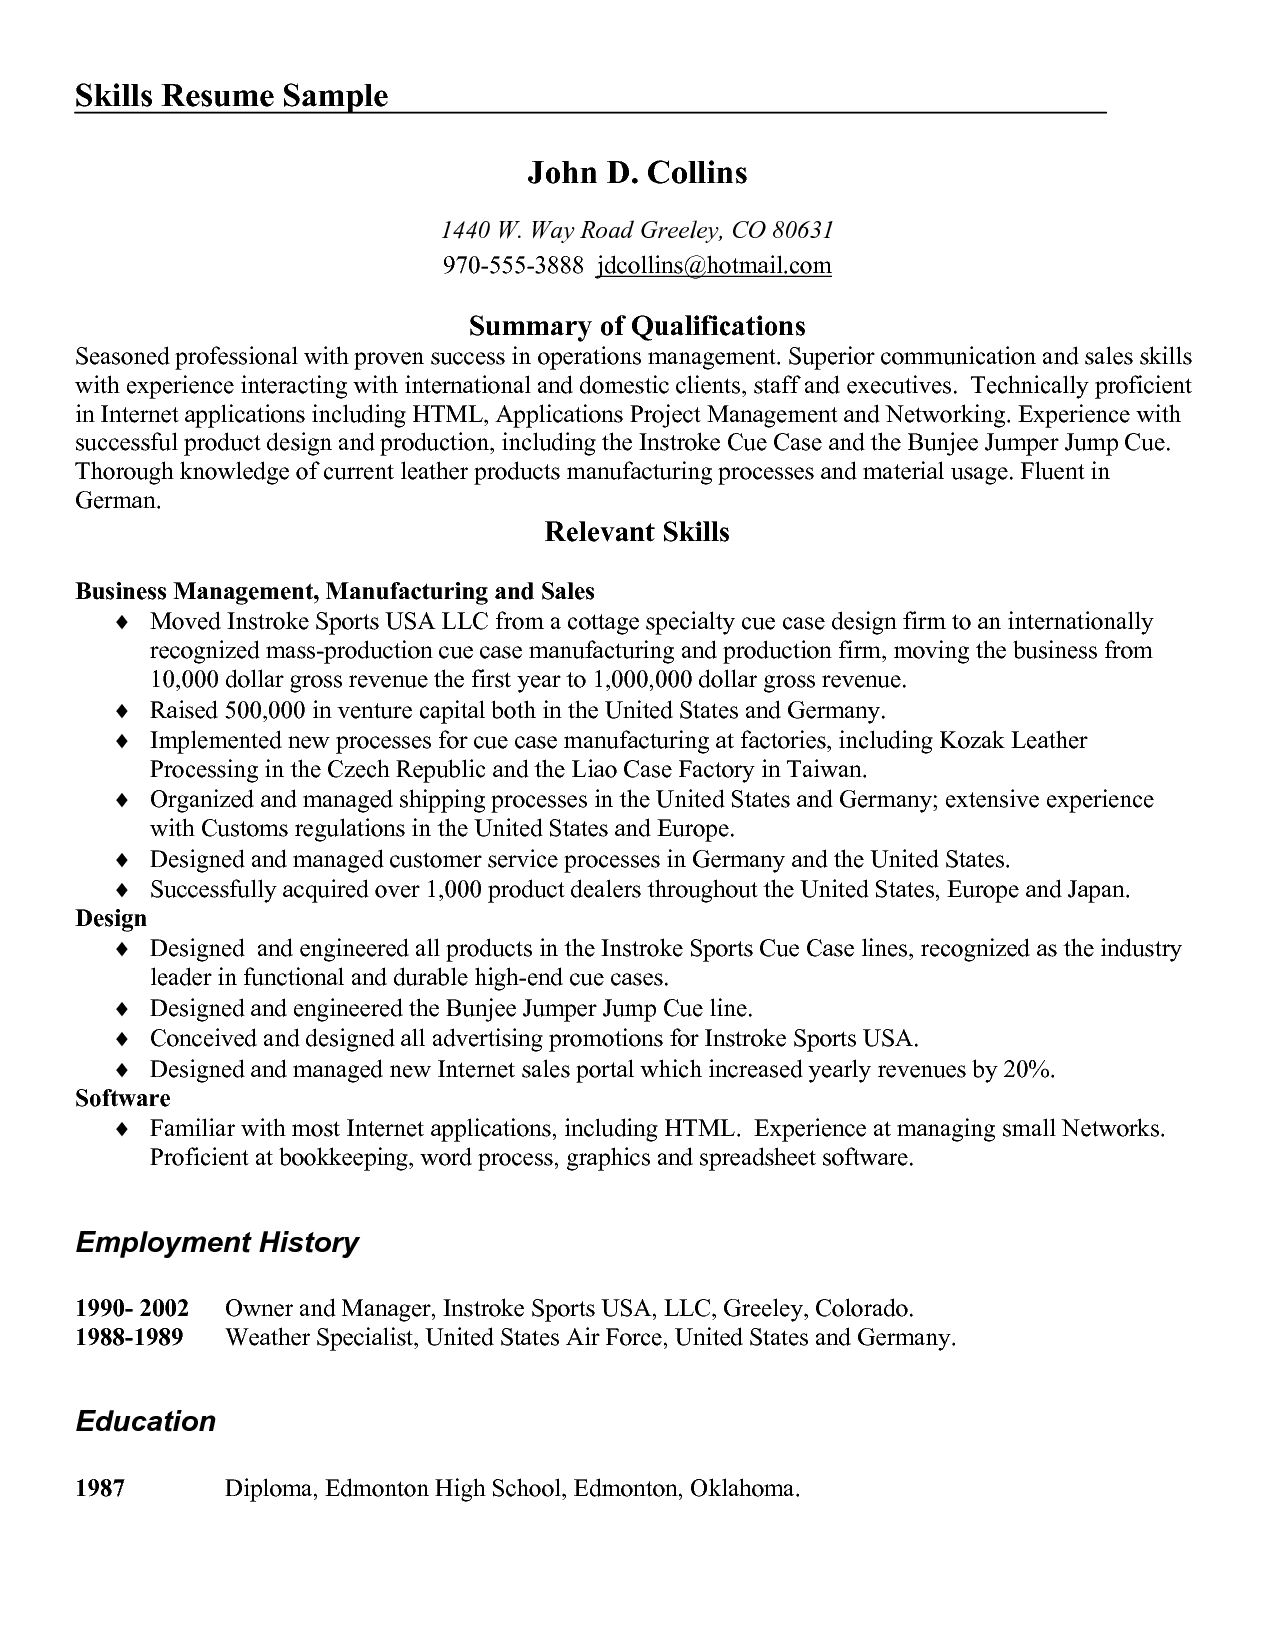 networking skills list for resumes